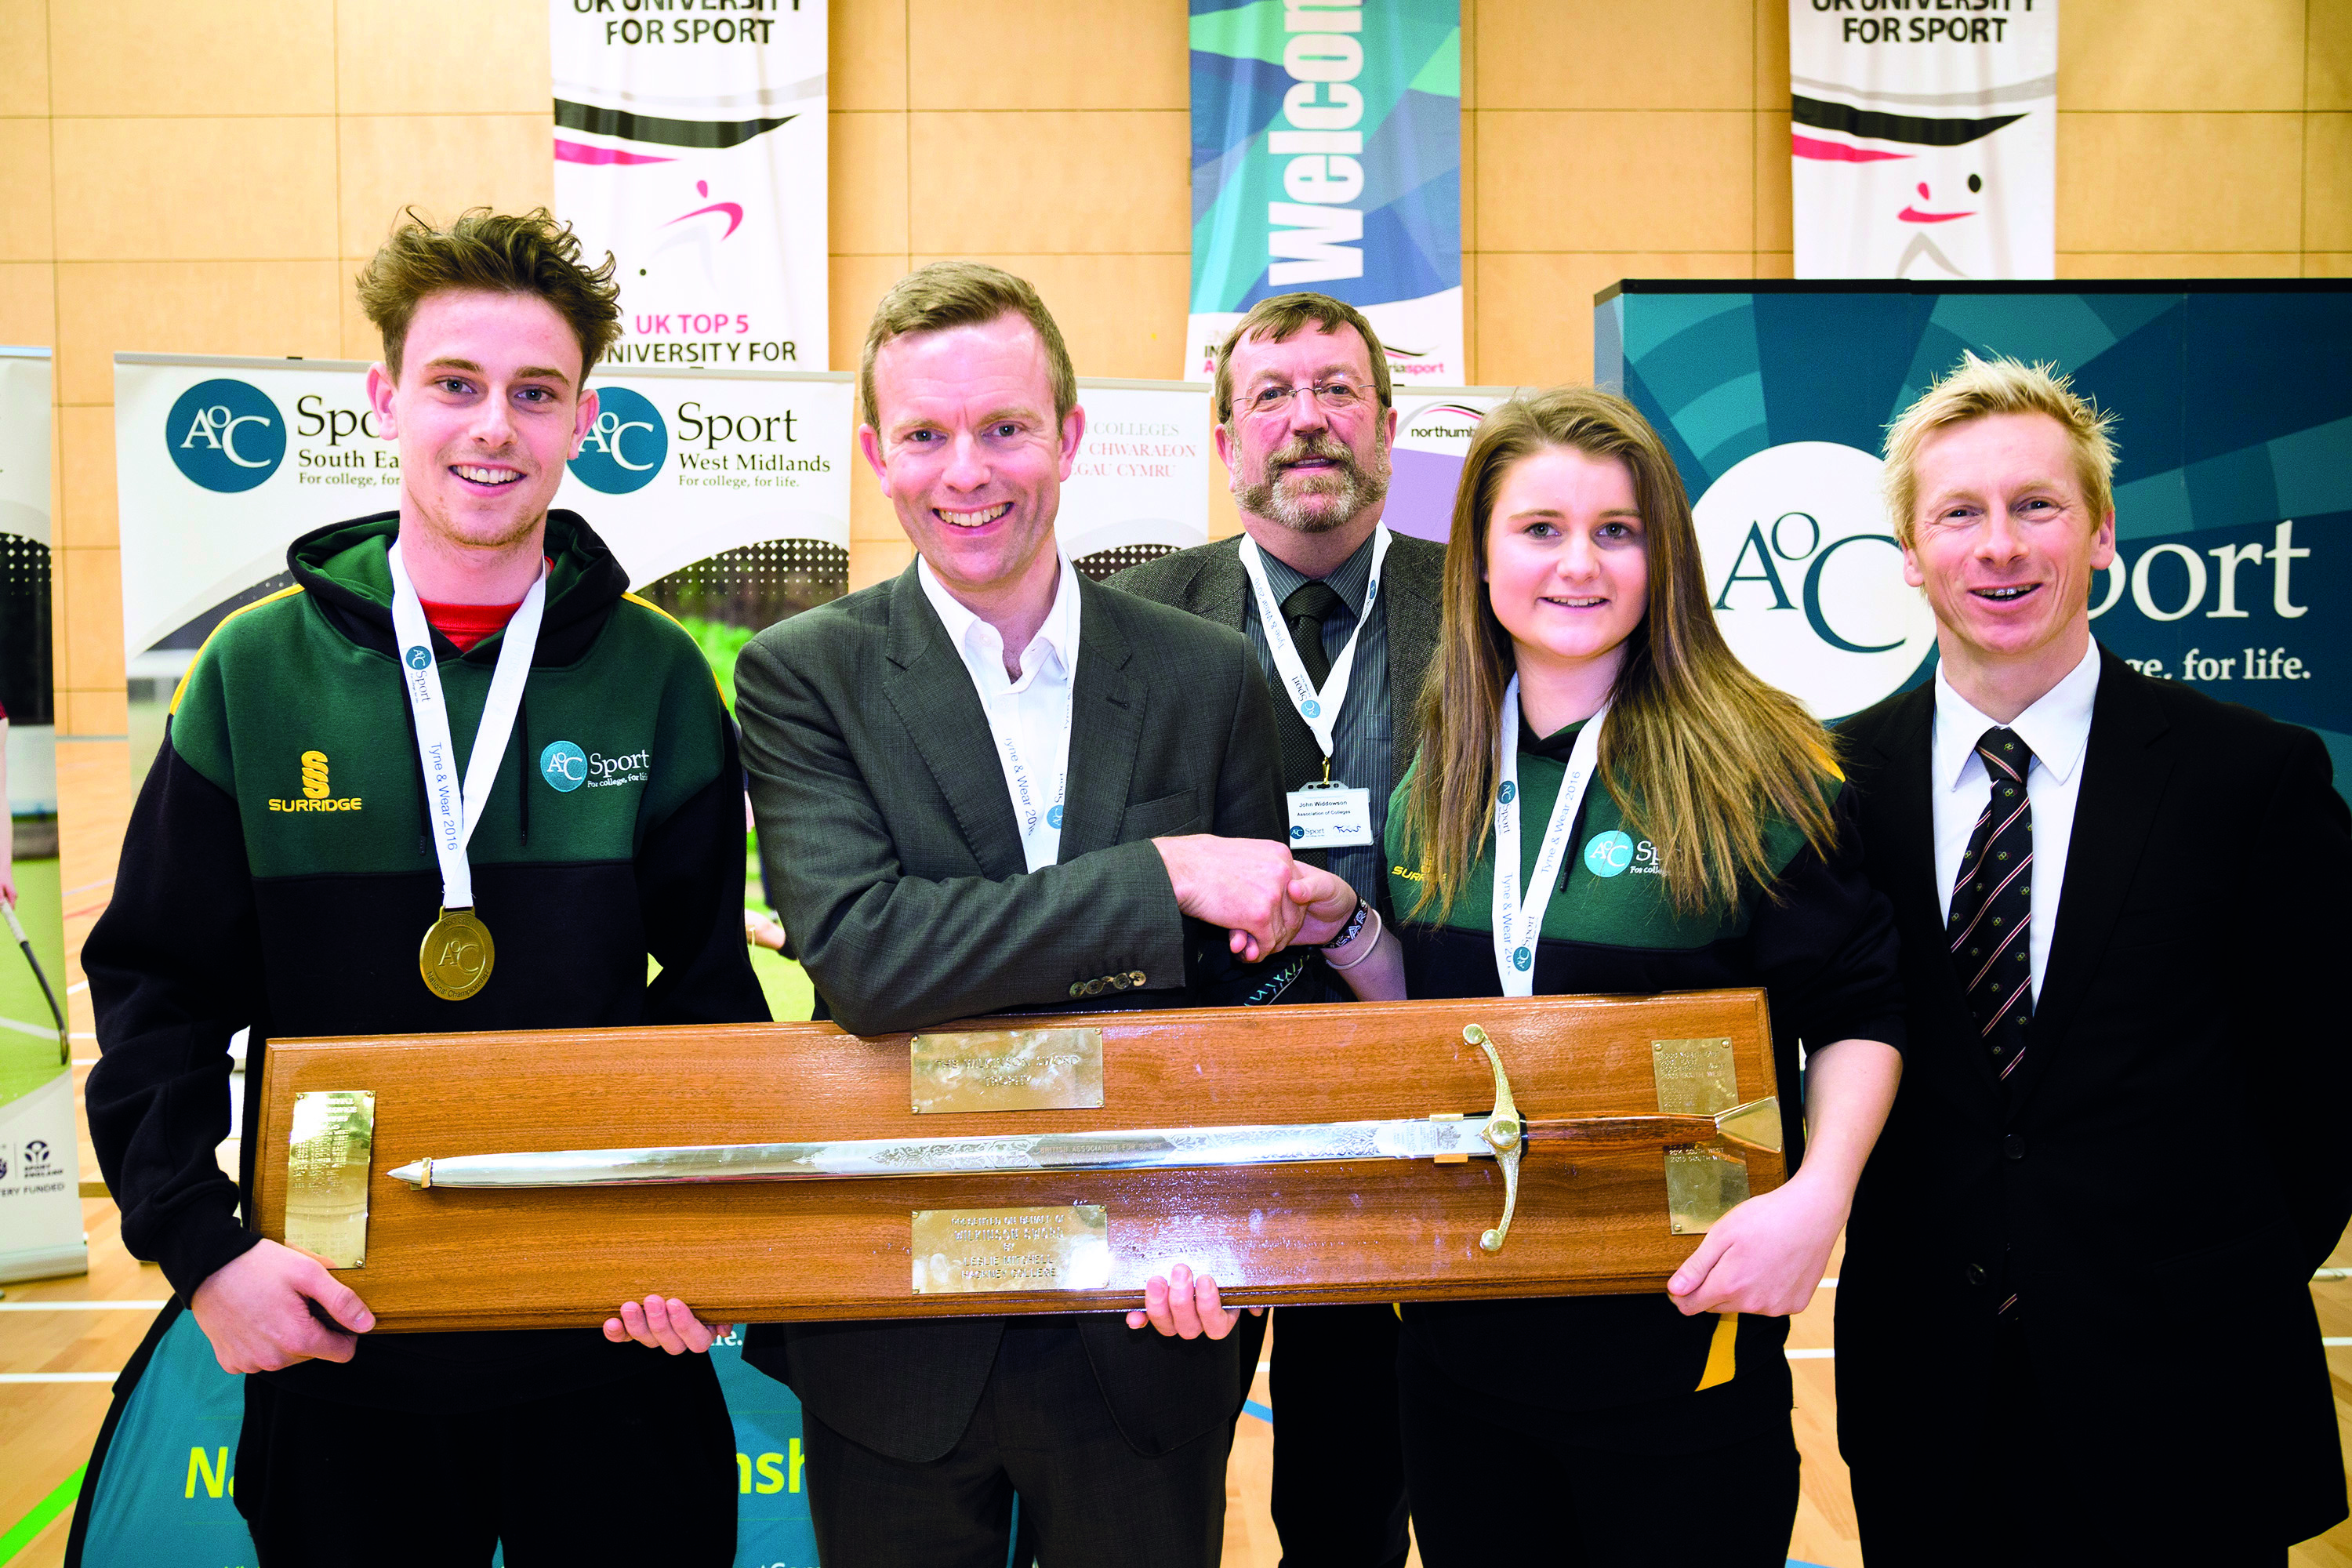 Team South West captains collecting the Wilkinson Sword at AoC Sport National Championships 2016